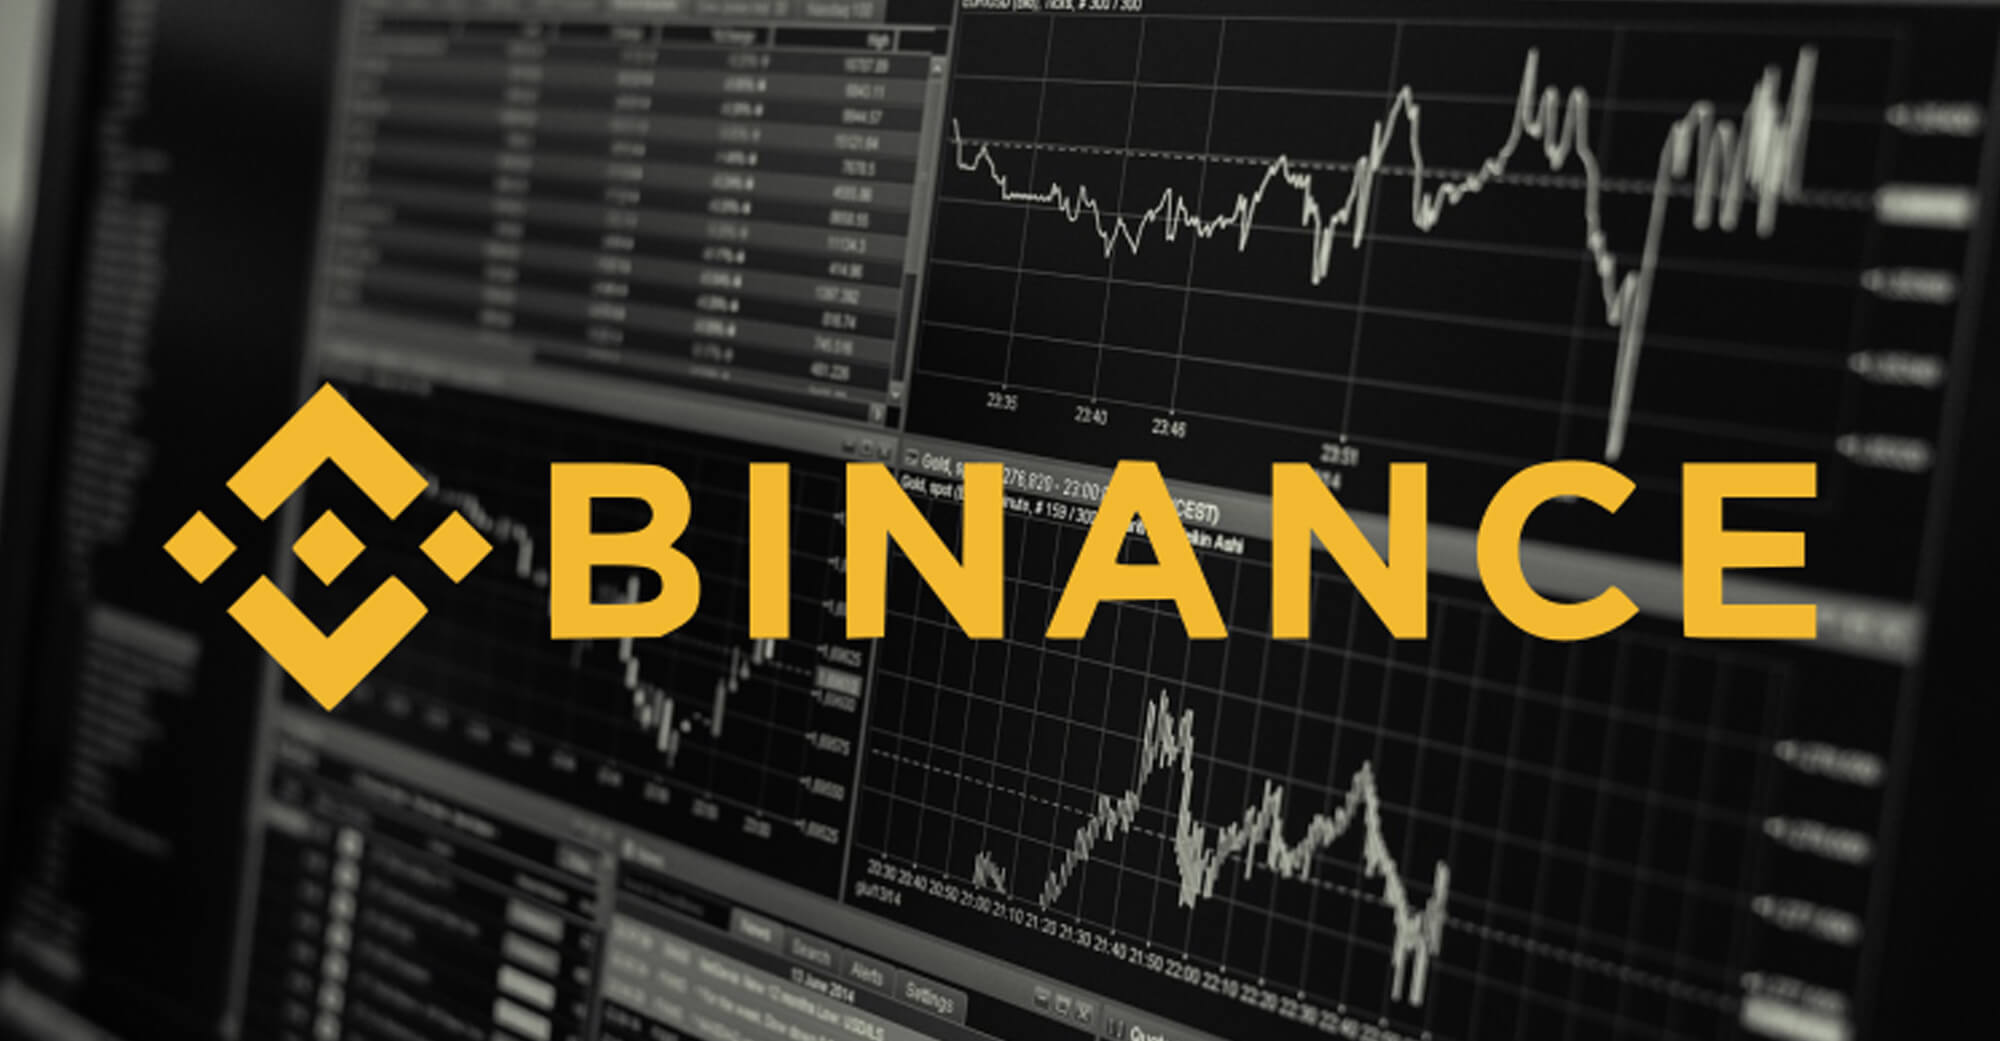 Binance Update: Margin Borrowing Amount Crosses $100 Million